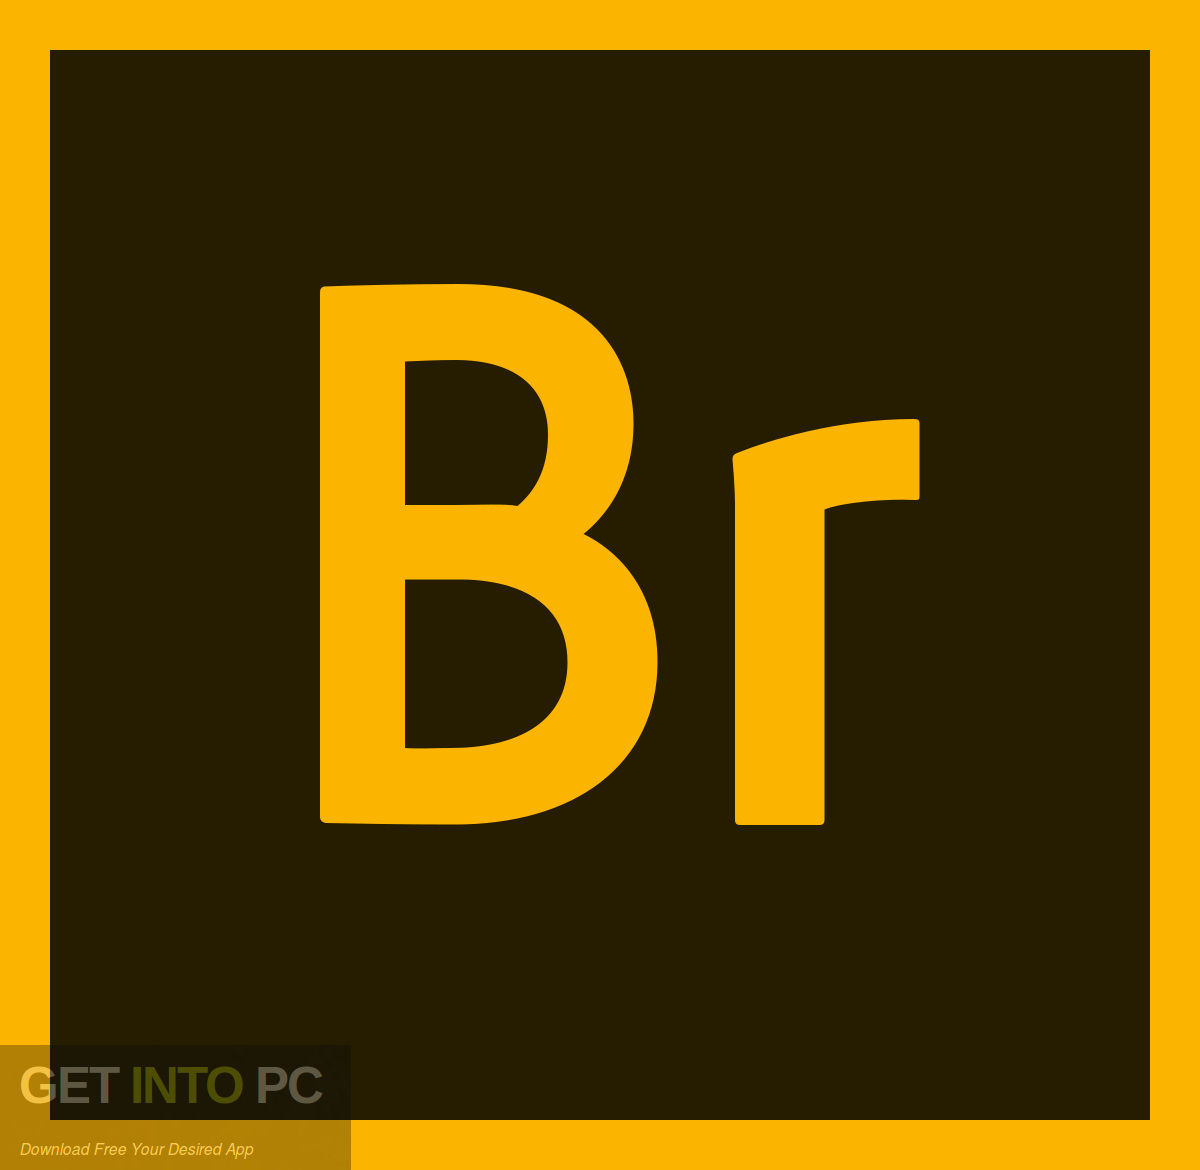 Adobe Bridge CC 2018 Free Download-GetintoPC.com